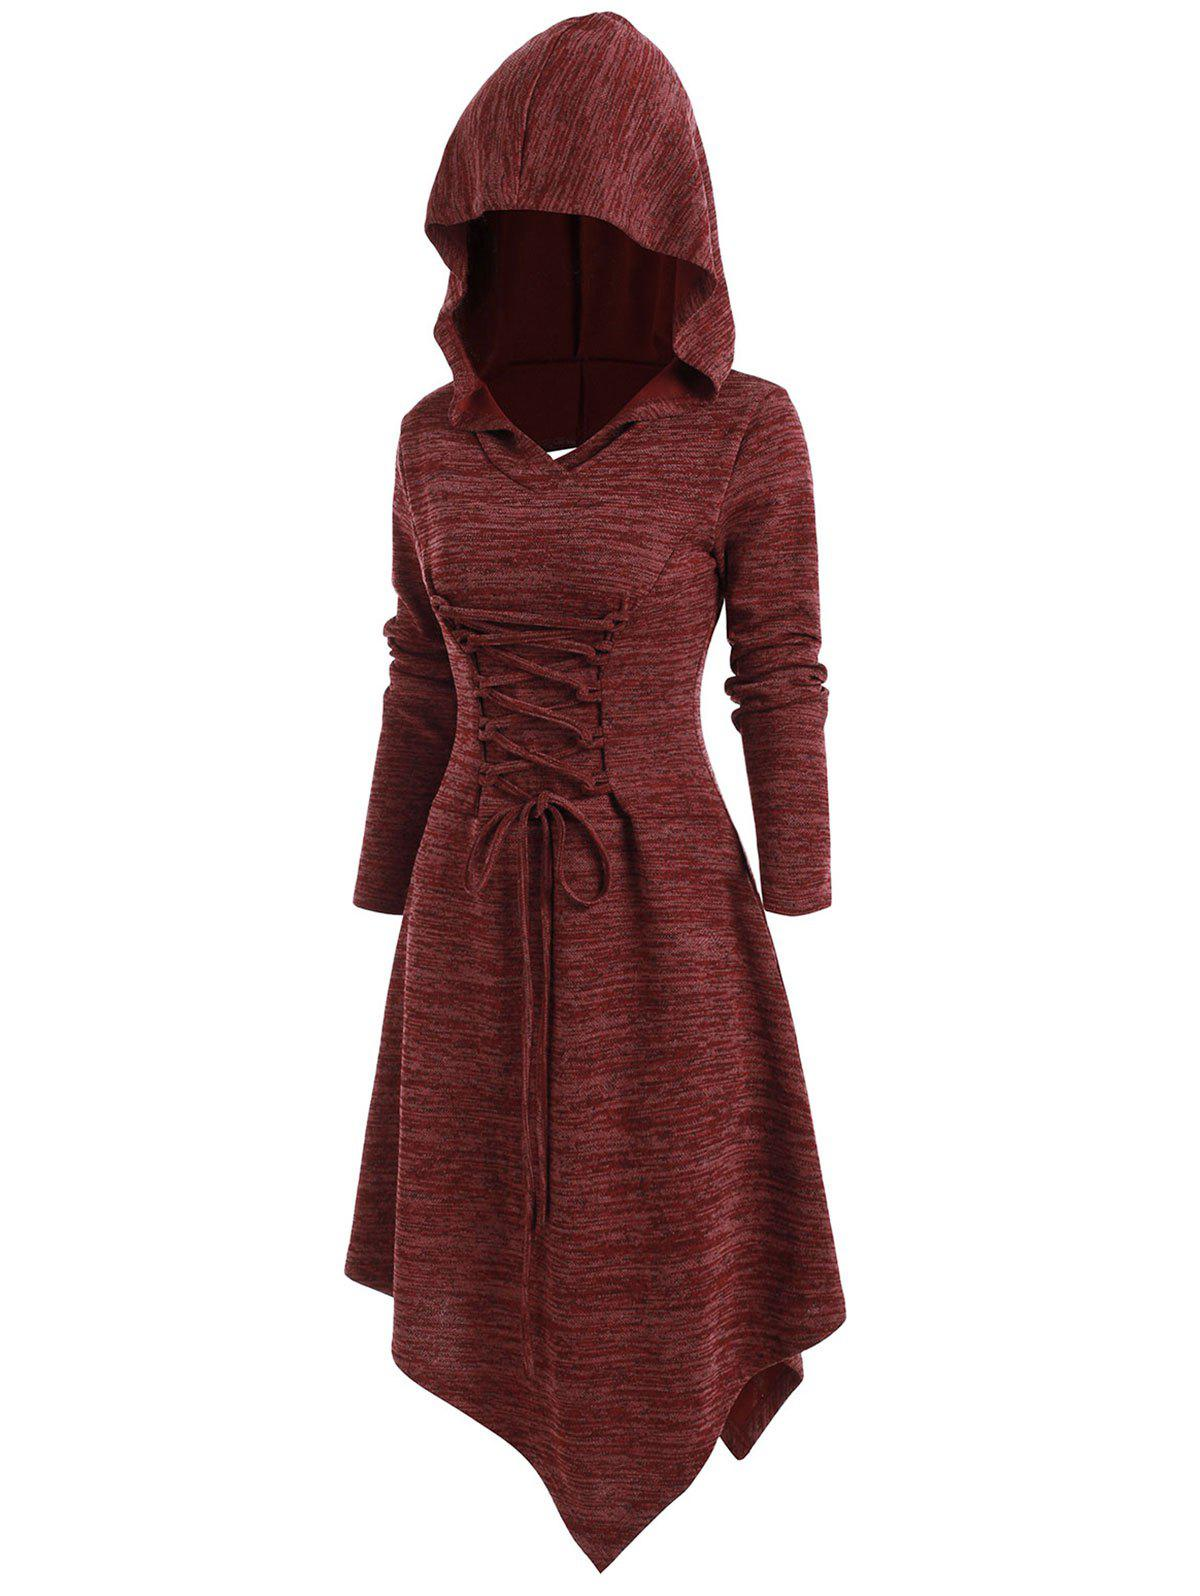 Fashion Lace Up Cut Out Asymmetric Hooded Dress